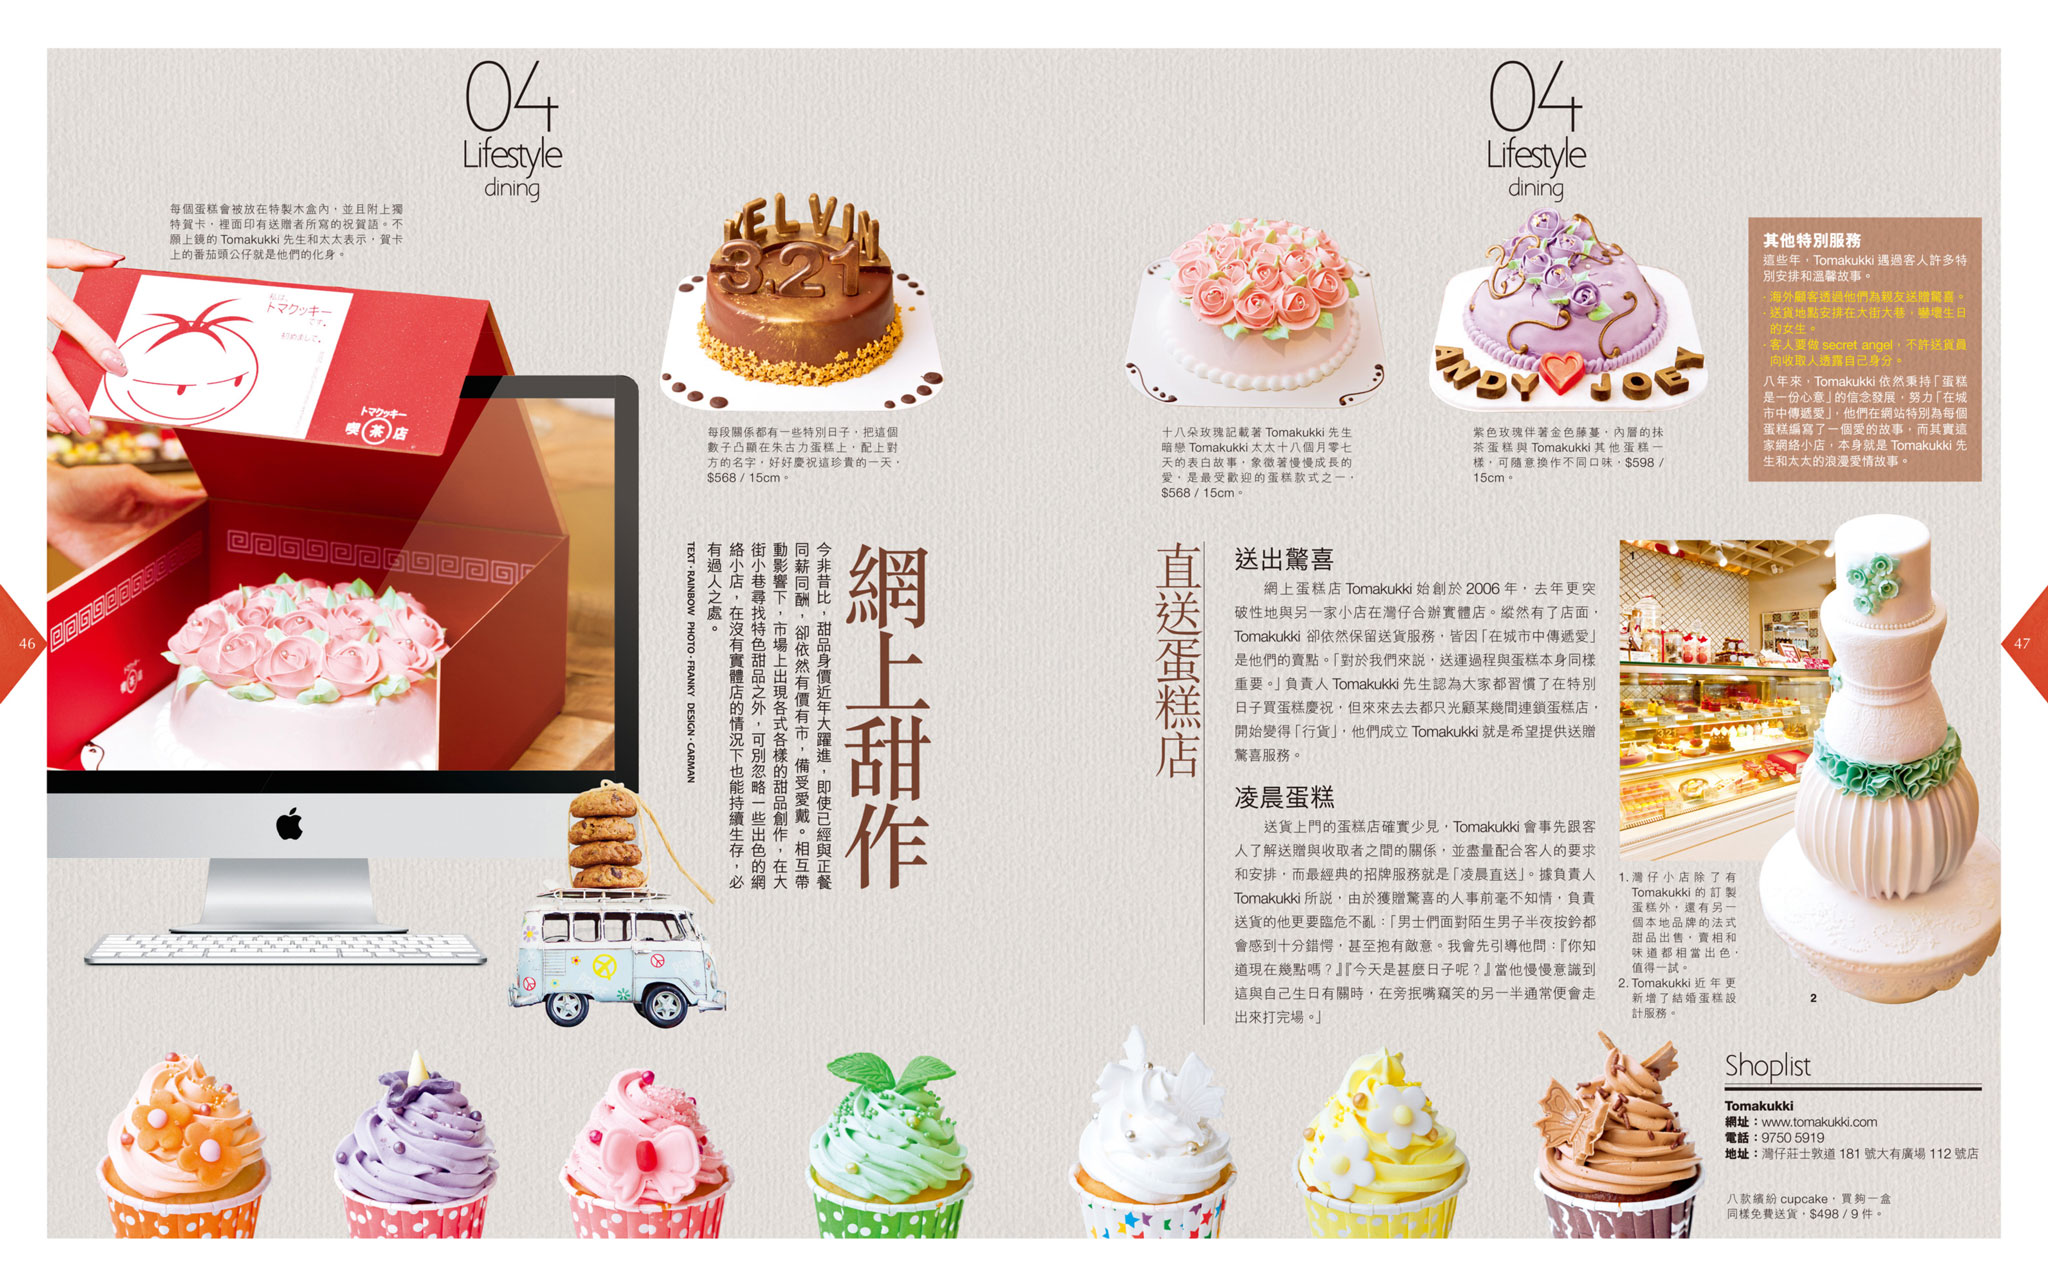 Metropop Found Mr Tomakukkis Lovely Birthday Cake Famous HK Food Magazine With Midnight Delivery